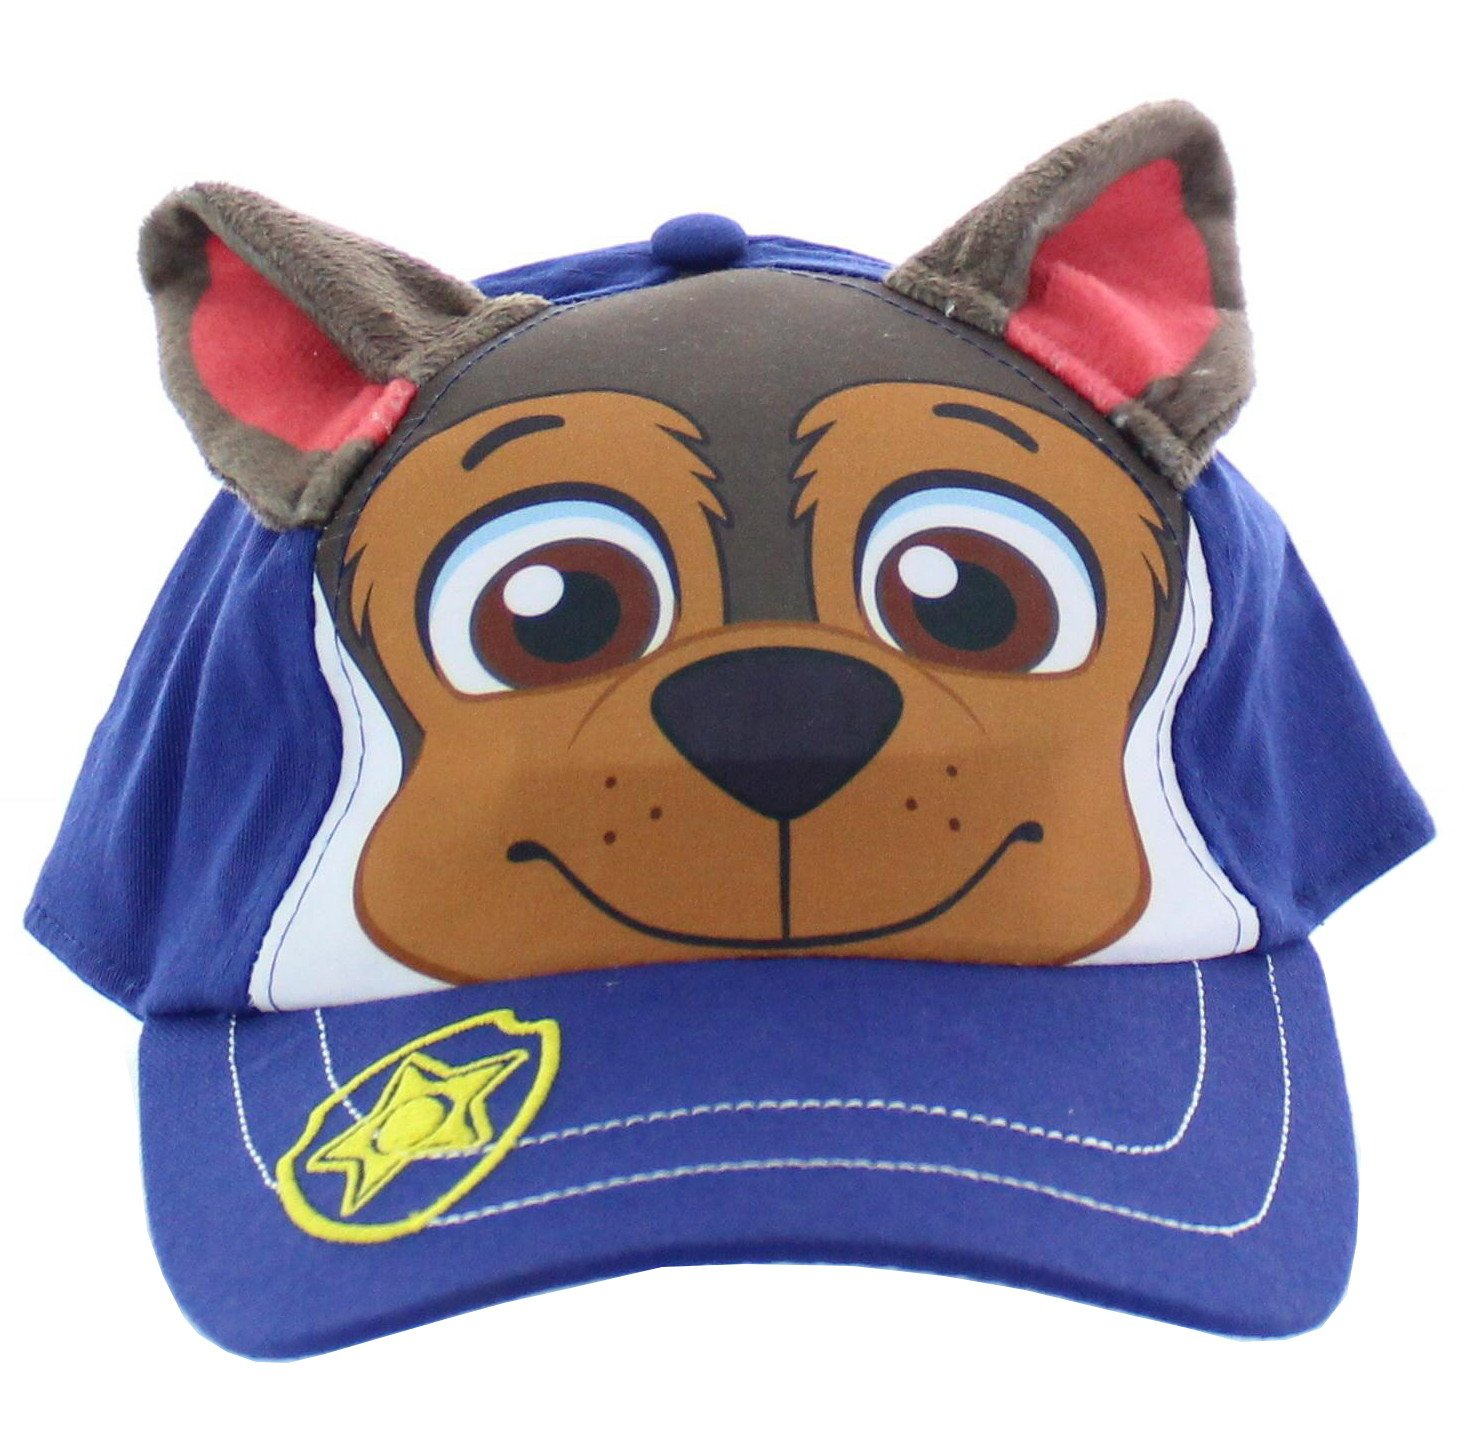 Paw Patrol Baseball cap for little boys - Chase, Marshall, Rubble (Chase)